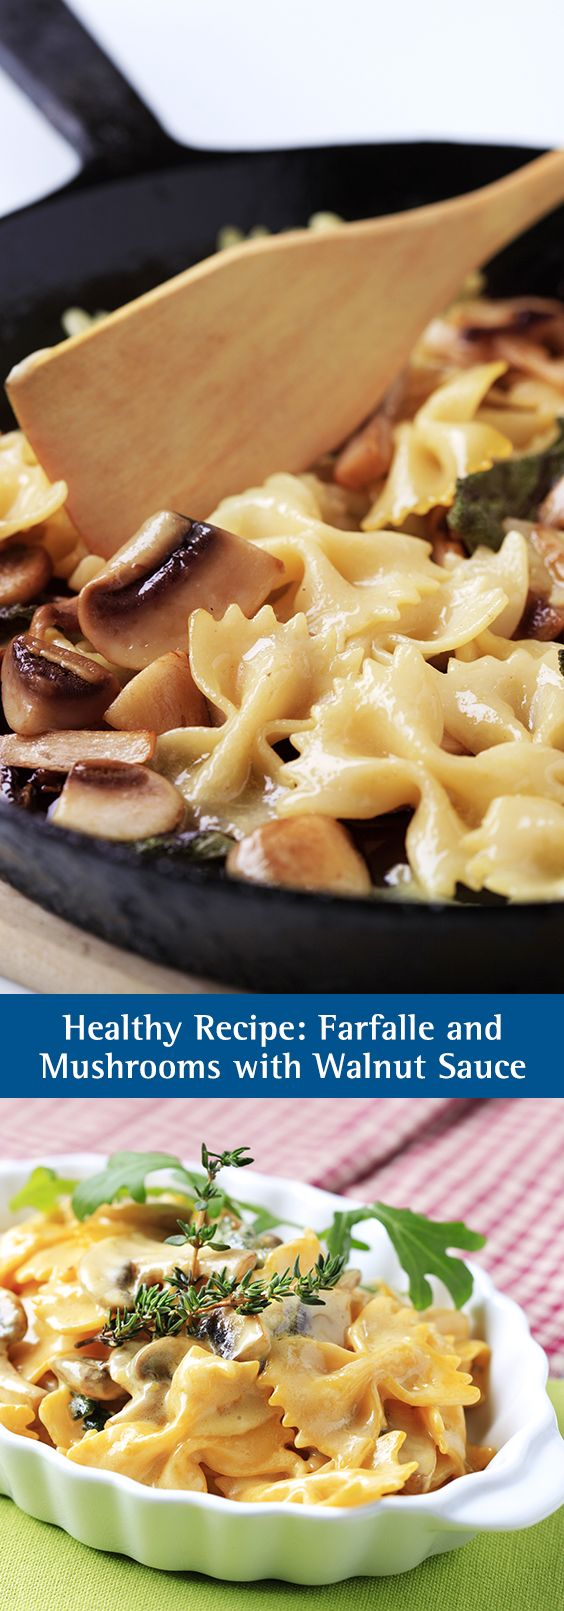 Healthy Vegetarian Recipe: Farfalle and Mushrooms with a Walnut Sauce. A creamy pasta recipe that you won't regret eating. Walnut sauce works as a healthy alternative to traditional pasta sauce. Top this healthy dish off with a sprinkle of Parmesan cheese.